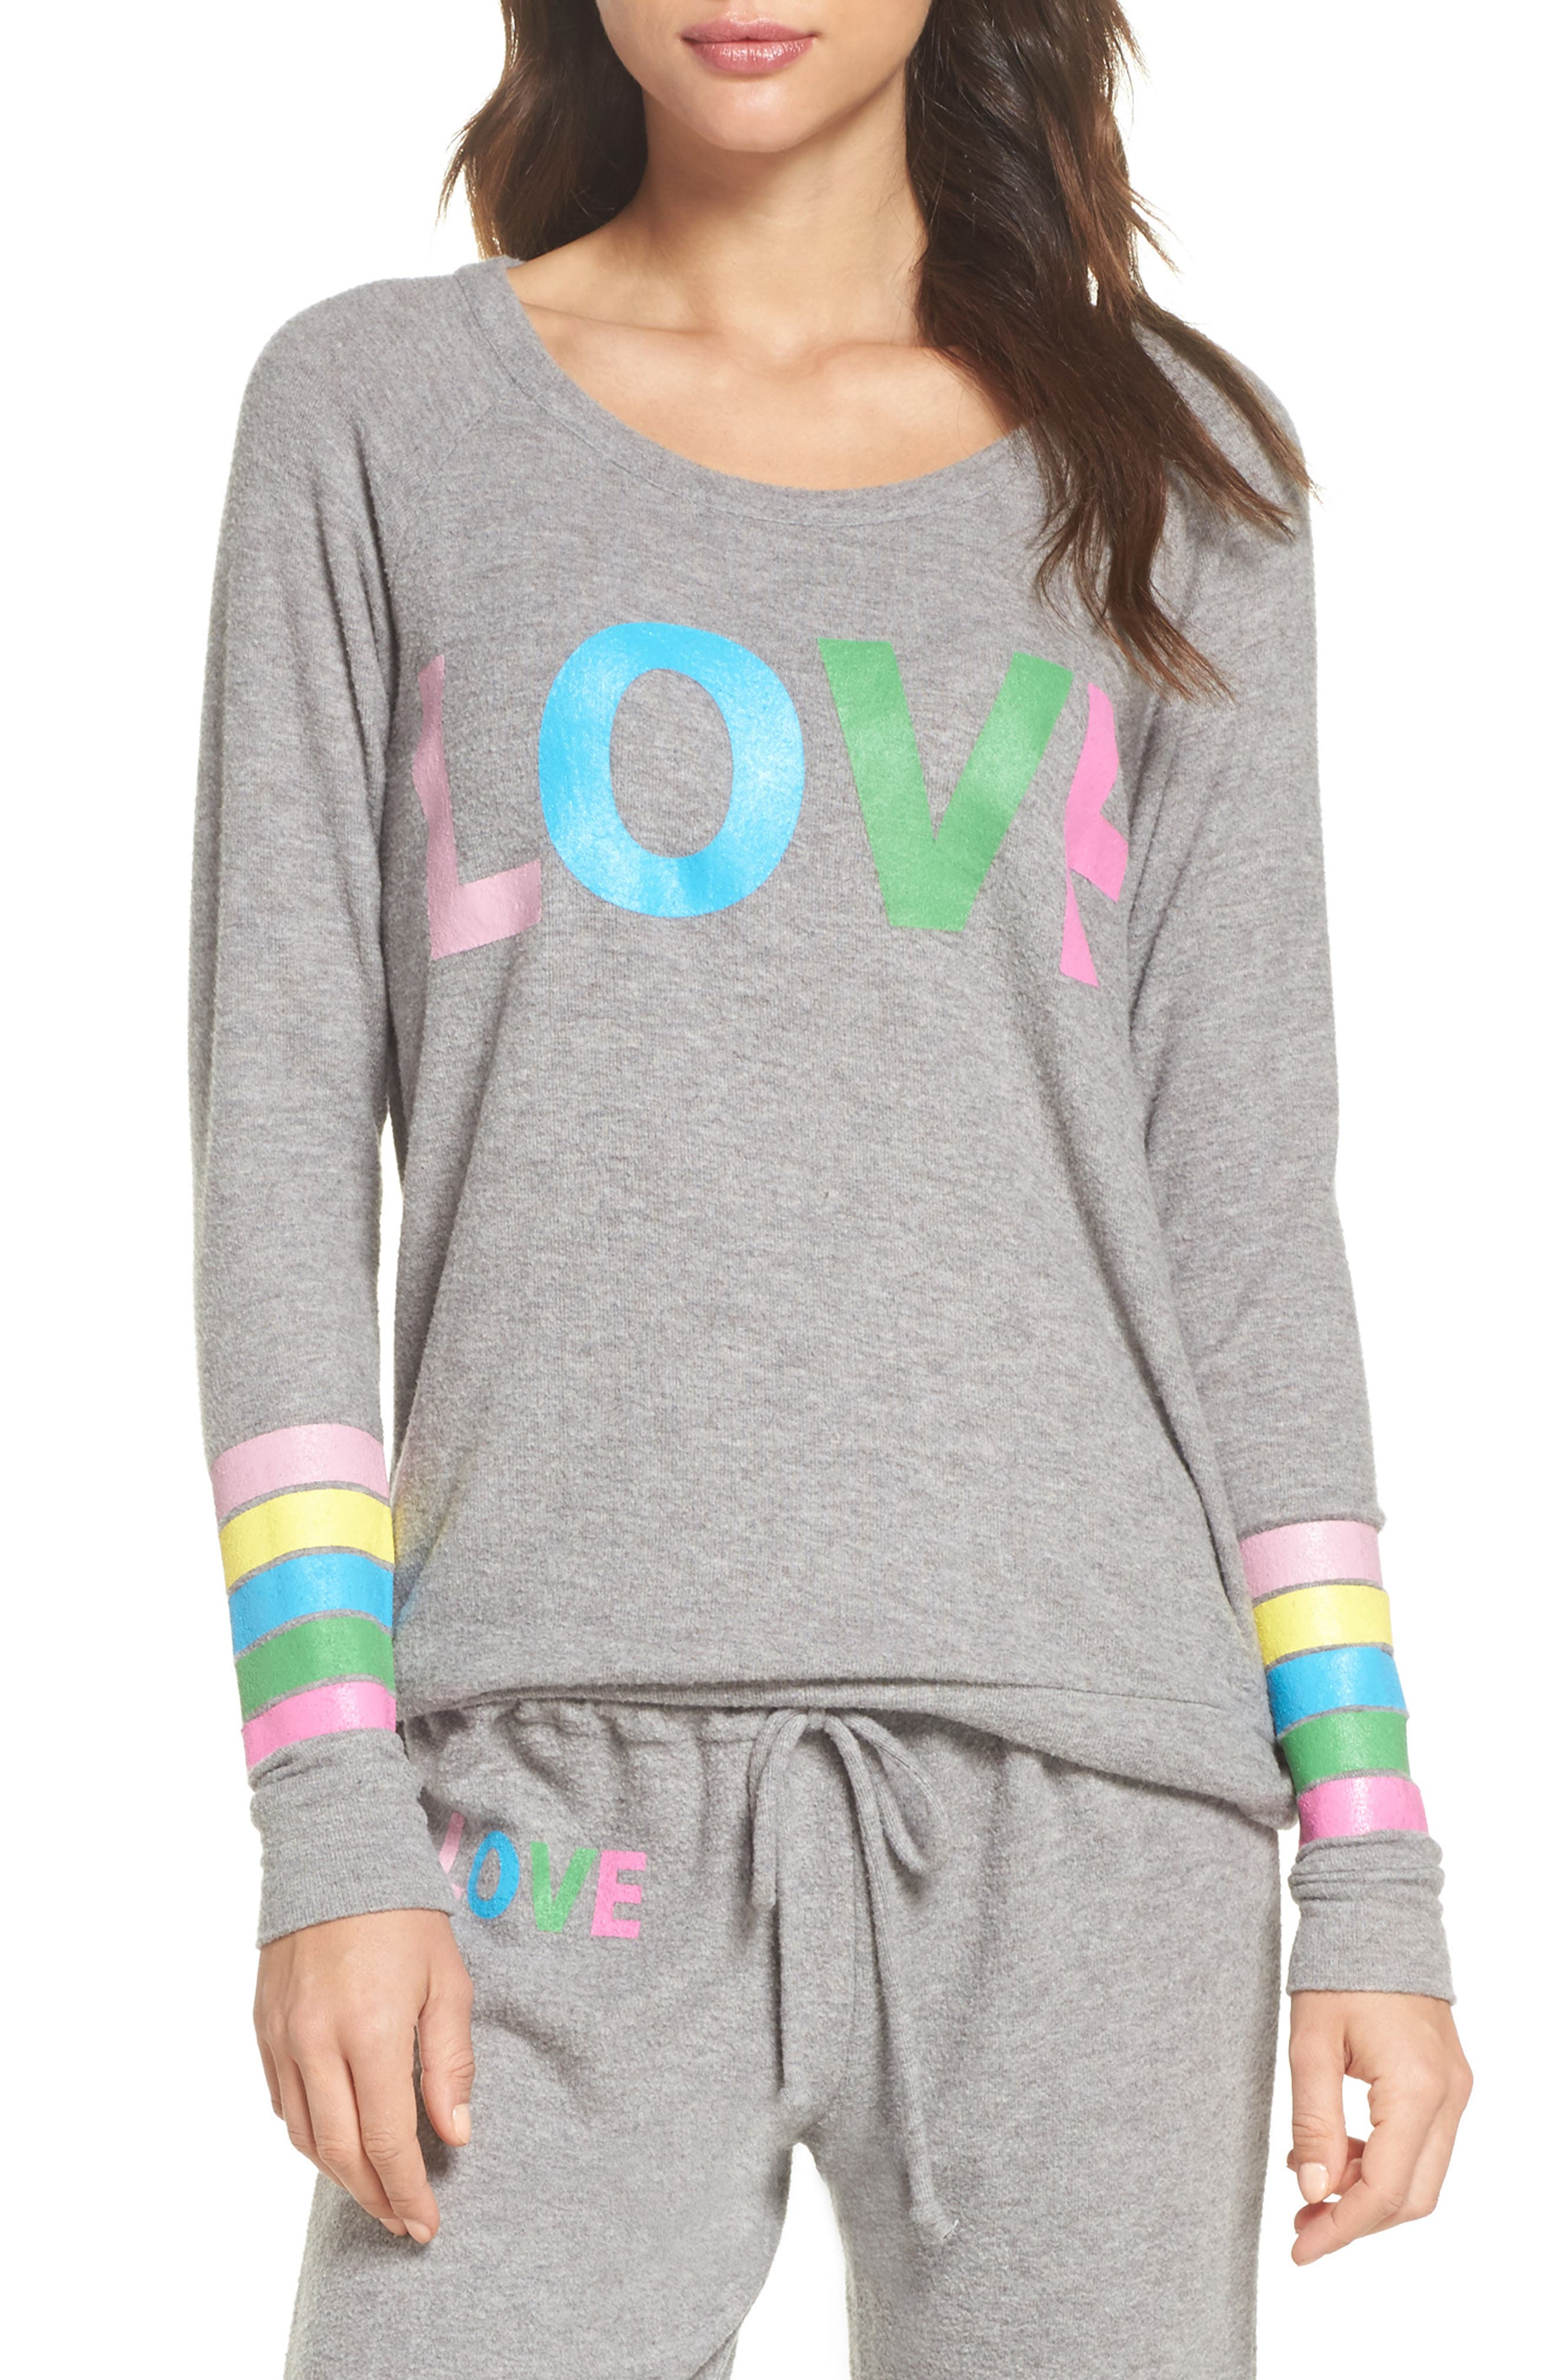 Chaser Love Strappy Back Sweatshirt